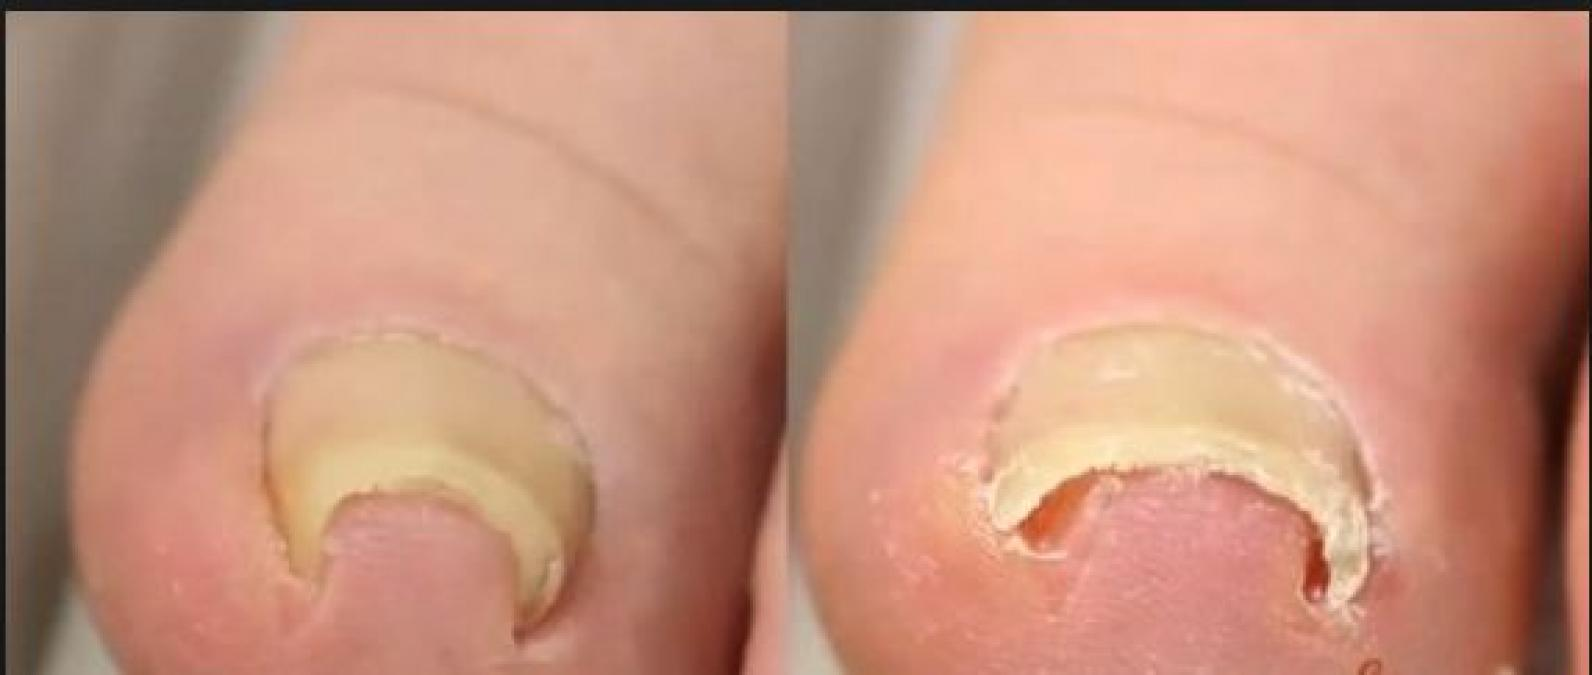 Give proper attention to your feet with these dos and don't for your ingrown toenail issue